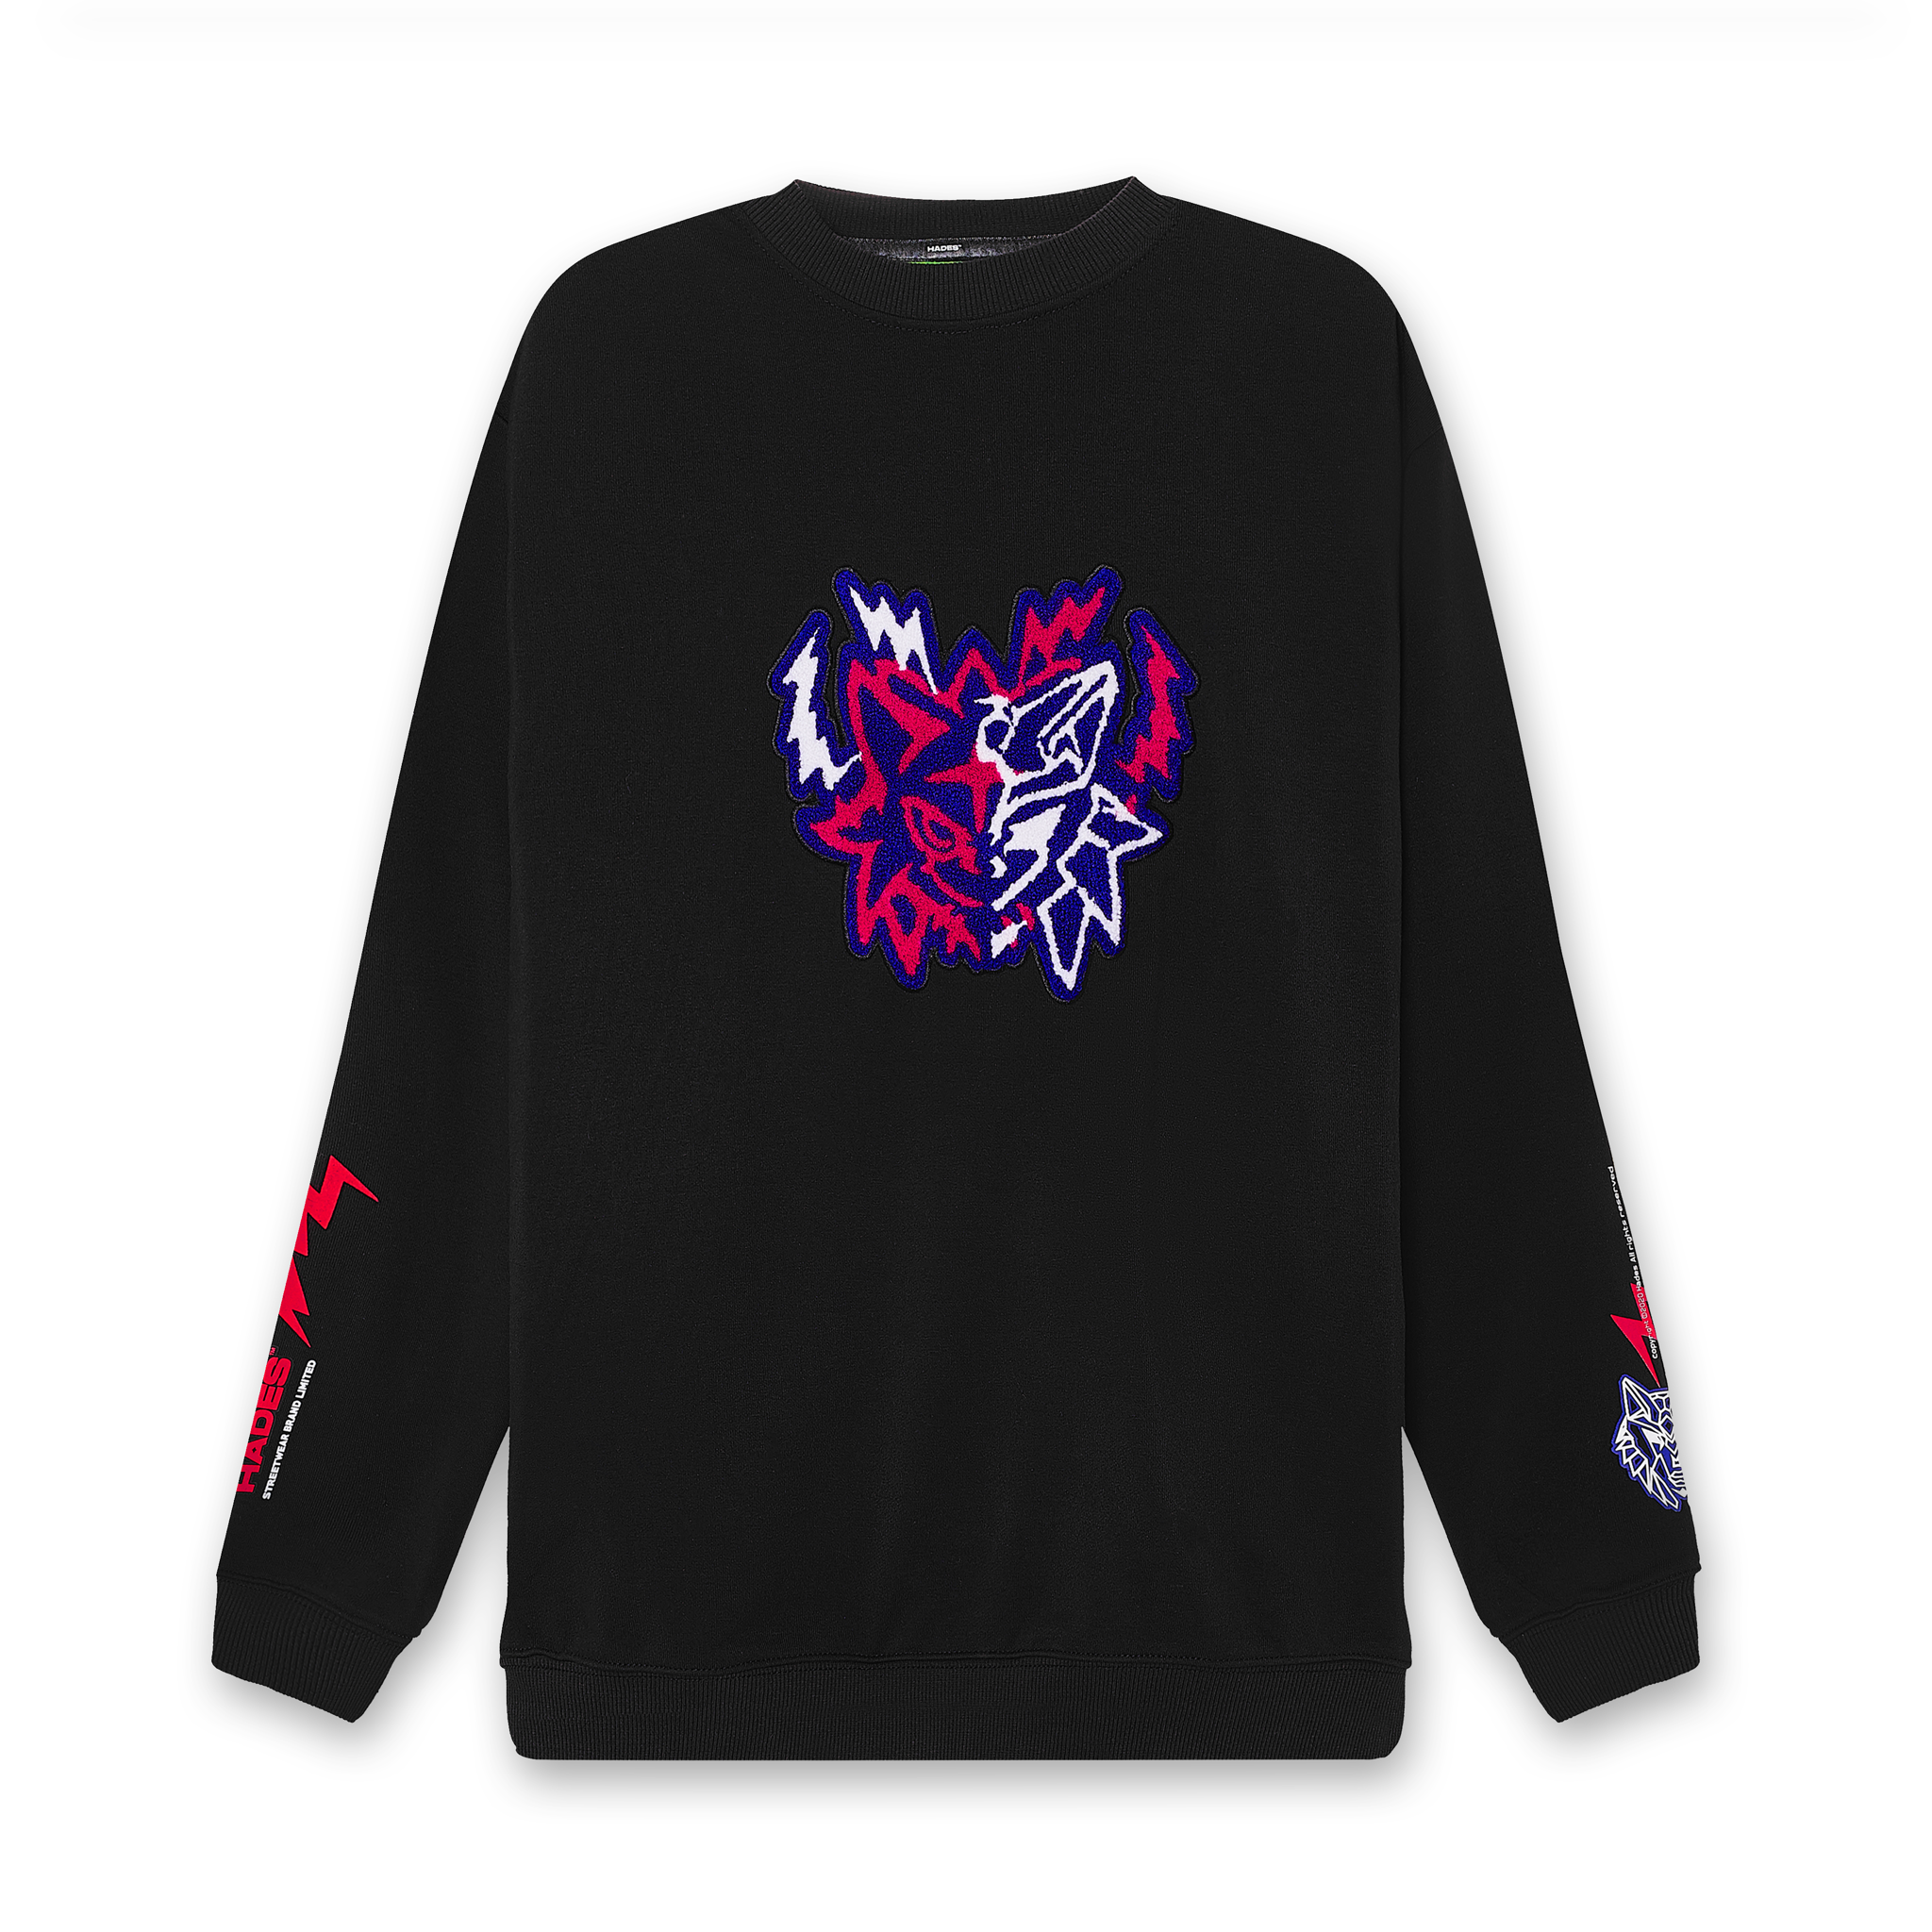 TWO FACES SWEATER - HADES STUDIO